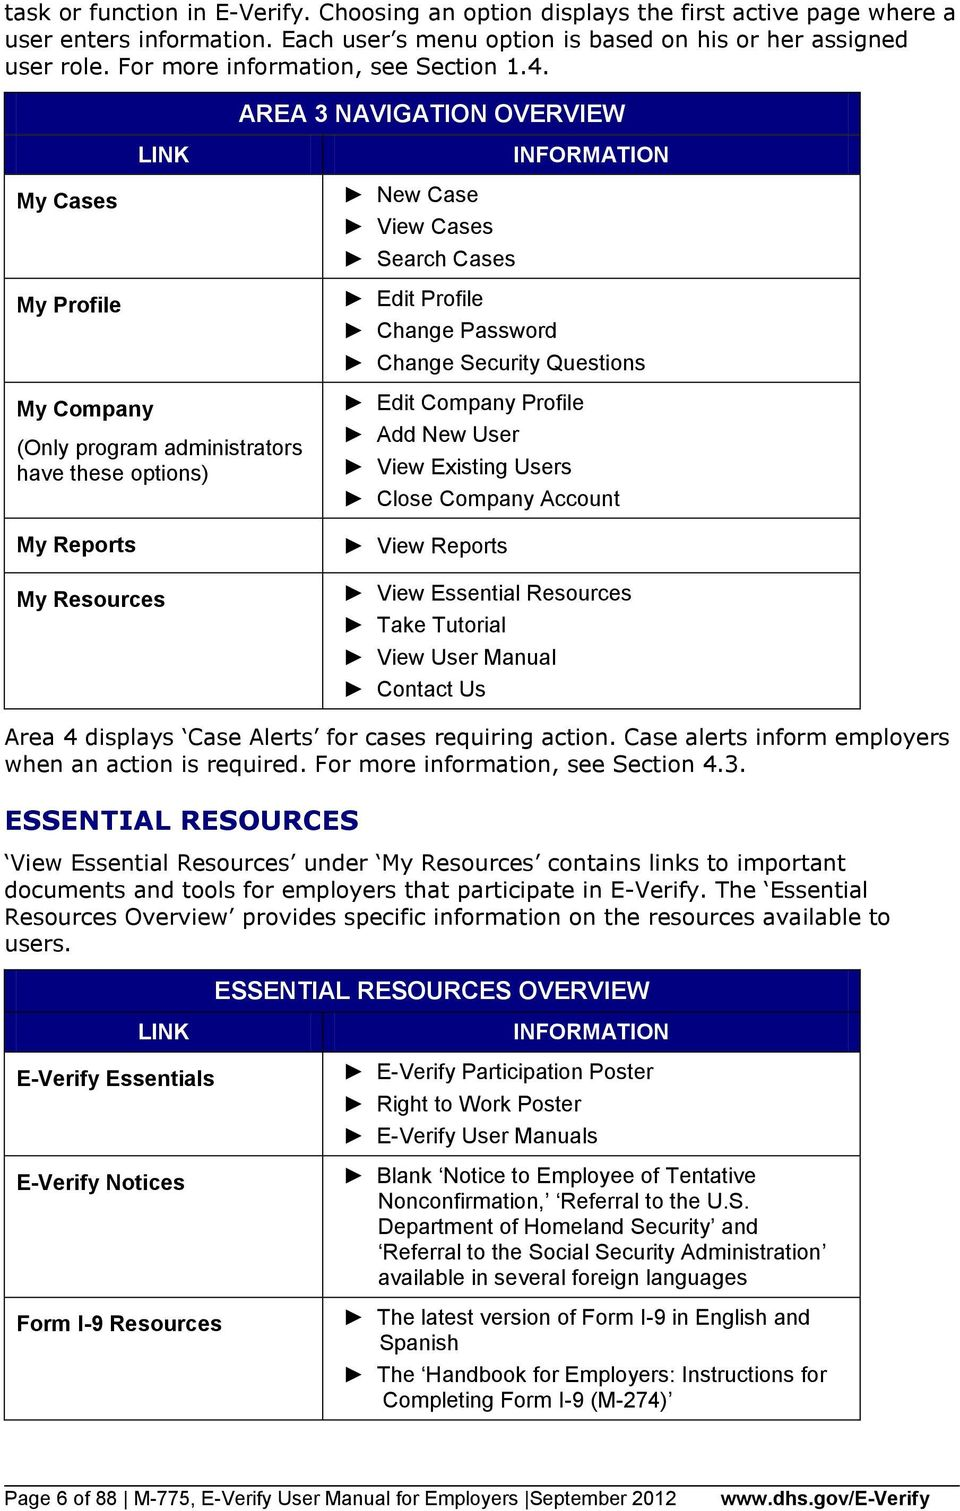 AREA 3 NAVIGATION OVERVIEW LINK INFORMATION My Cases My Profile My Company (Only program administrators have these options) My Reports My Resources New Case View Cases Search Cases Edit Profile